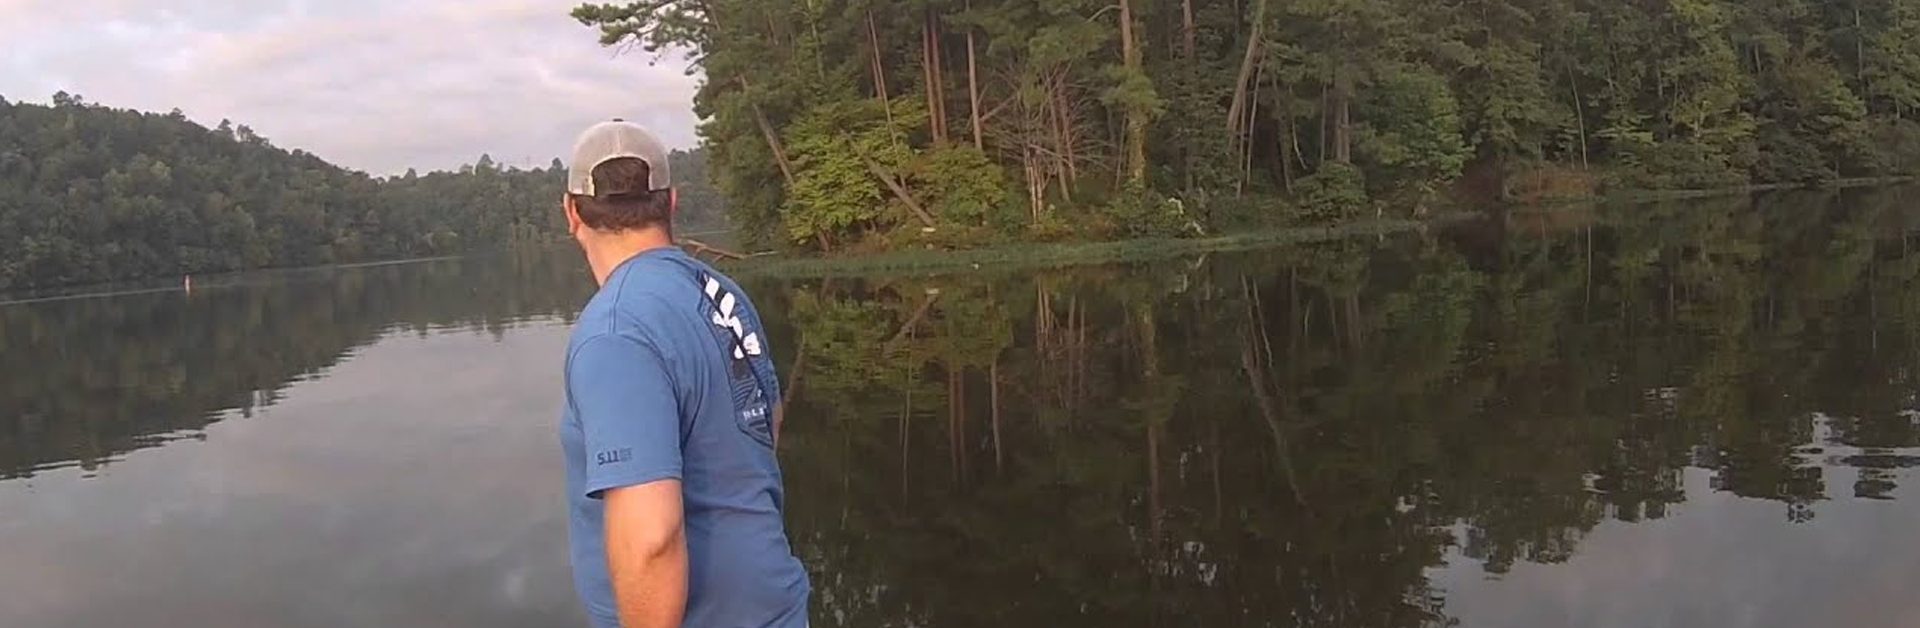 Catching Catfish Like You've Never Seen It Before